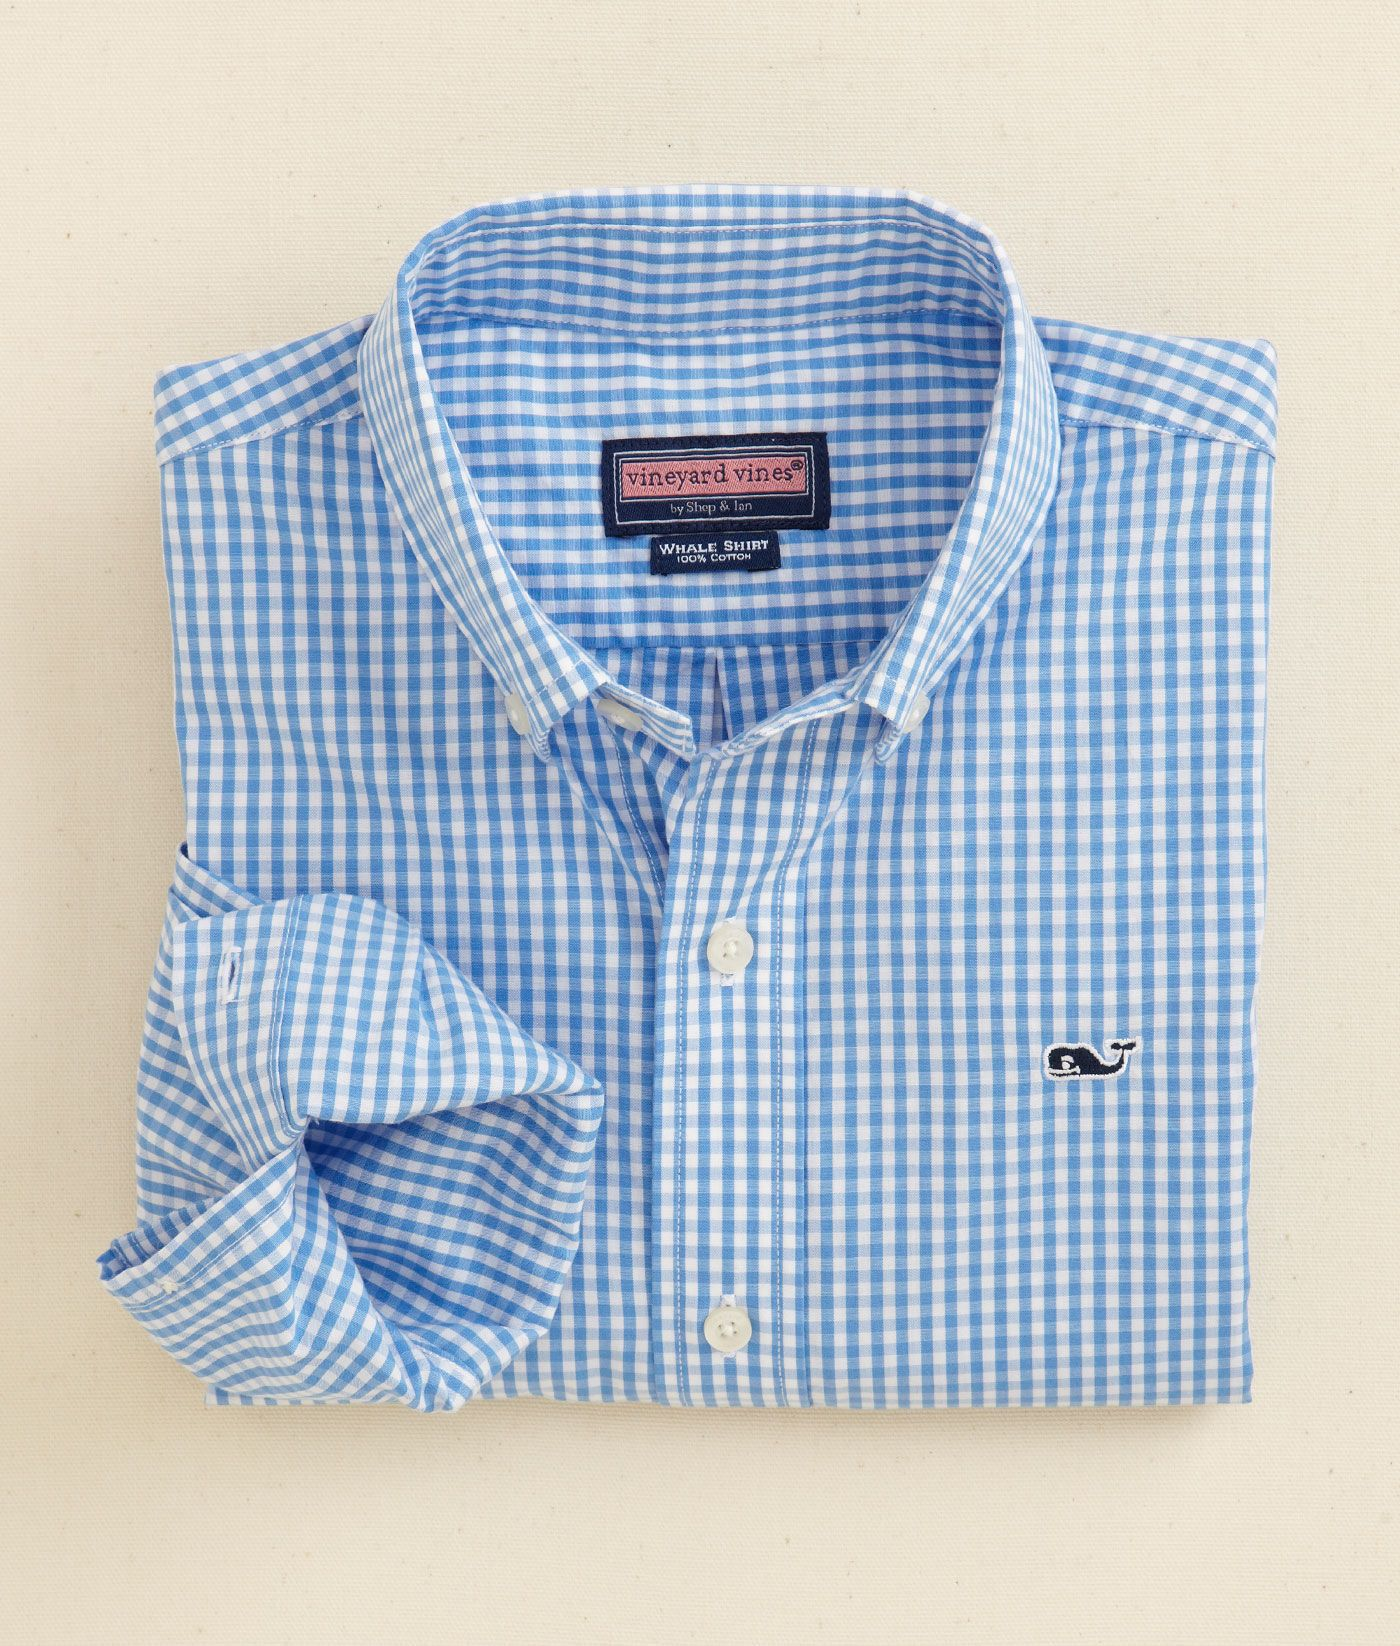 13cbfdd4 Shop Shirts: Classic Gingham Whale Shirt for Boys | Vineyard Vines ...